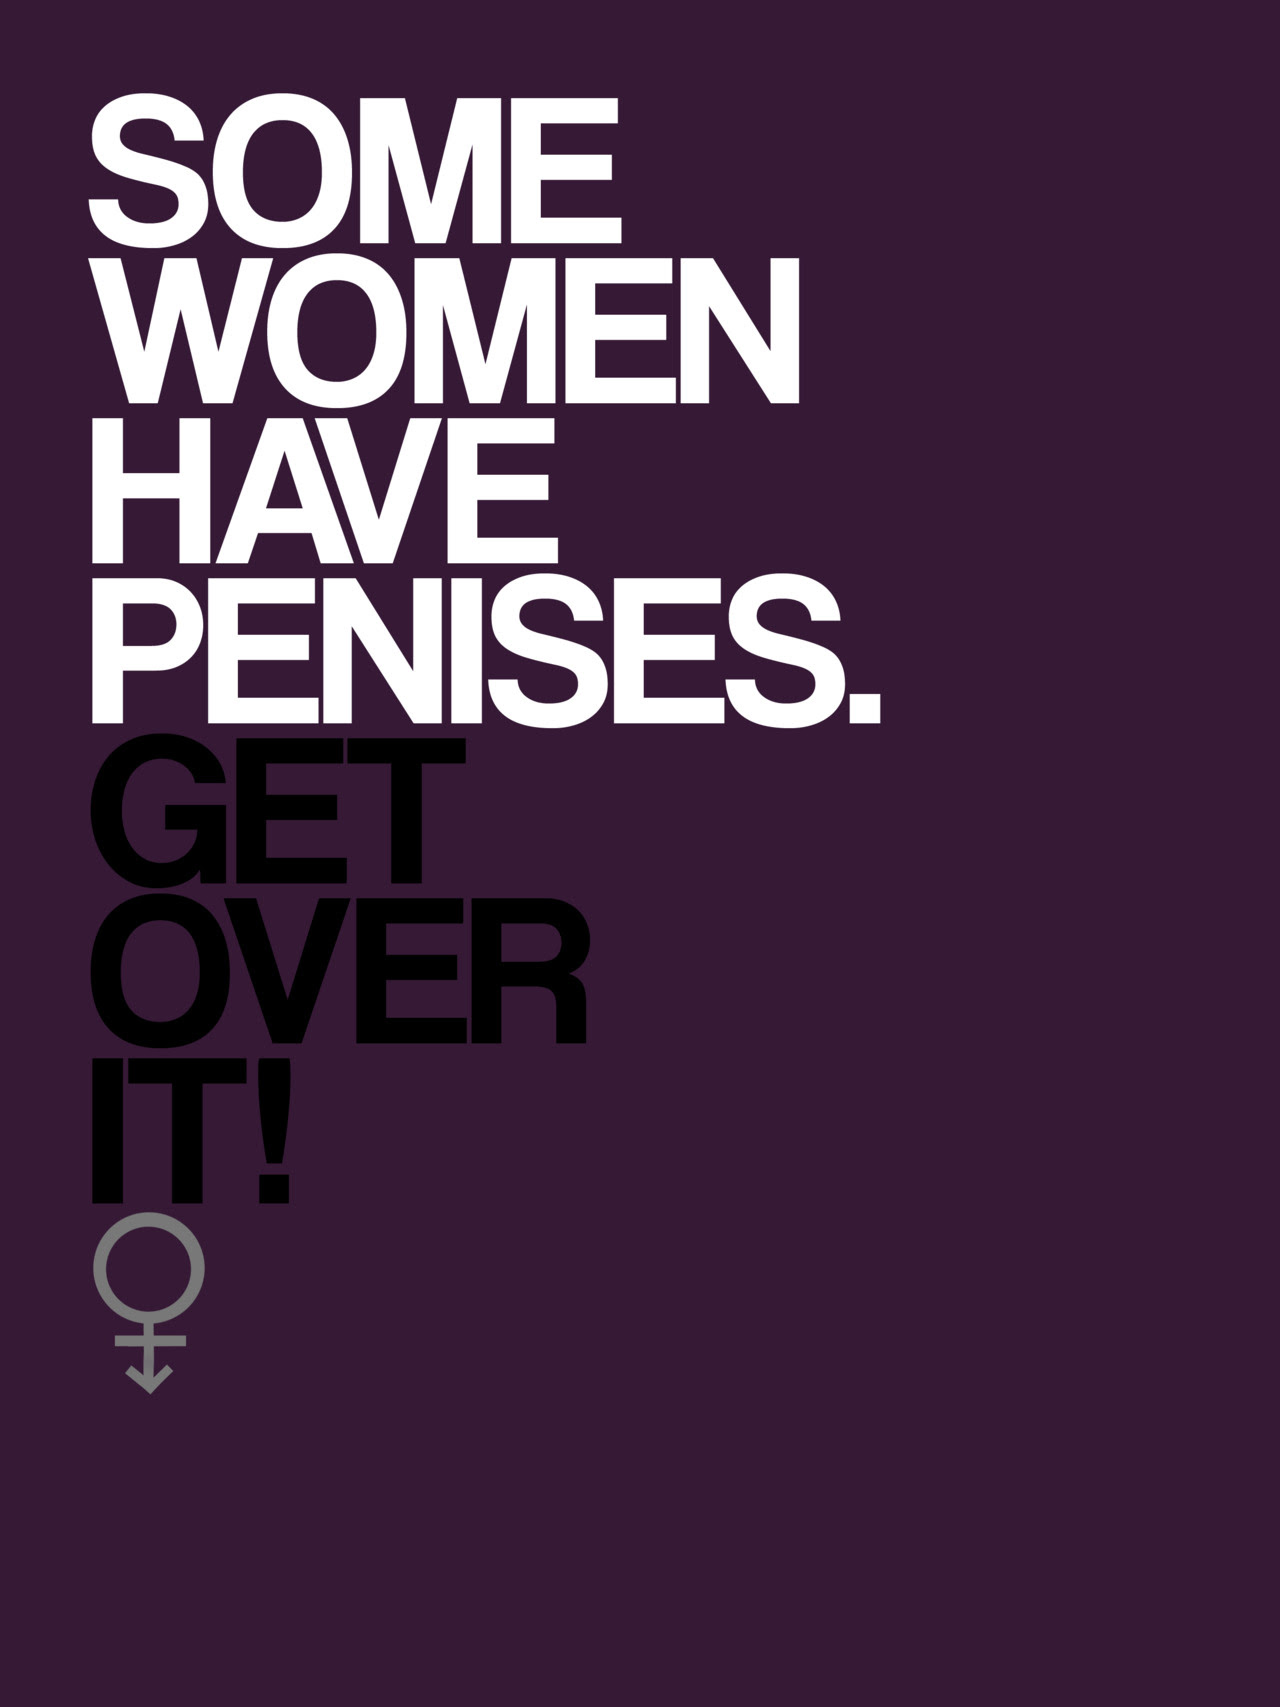 some women have penises get over it